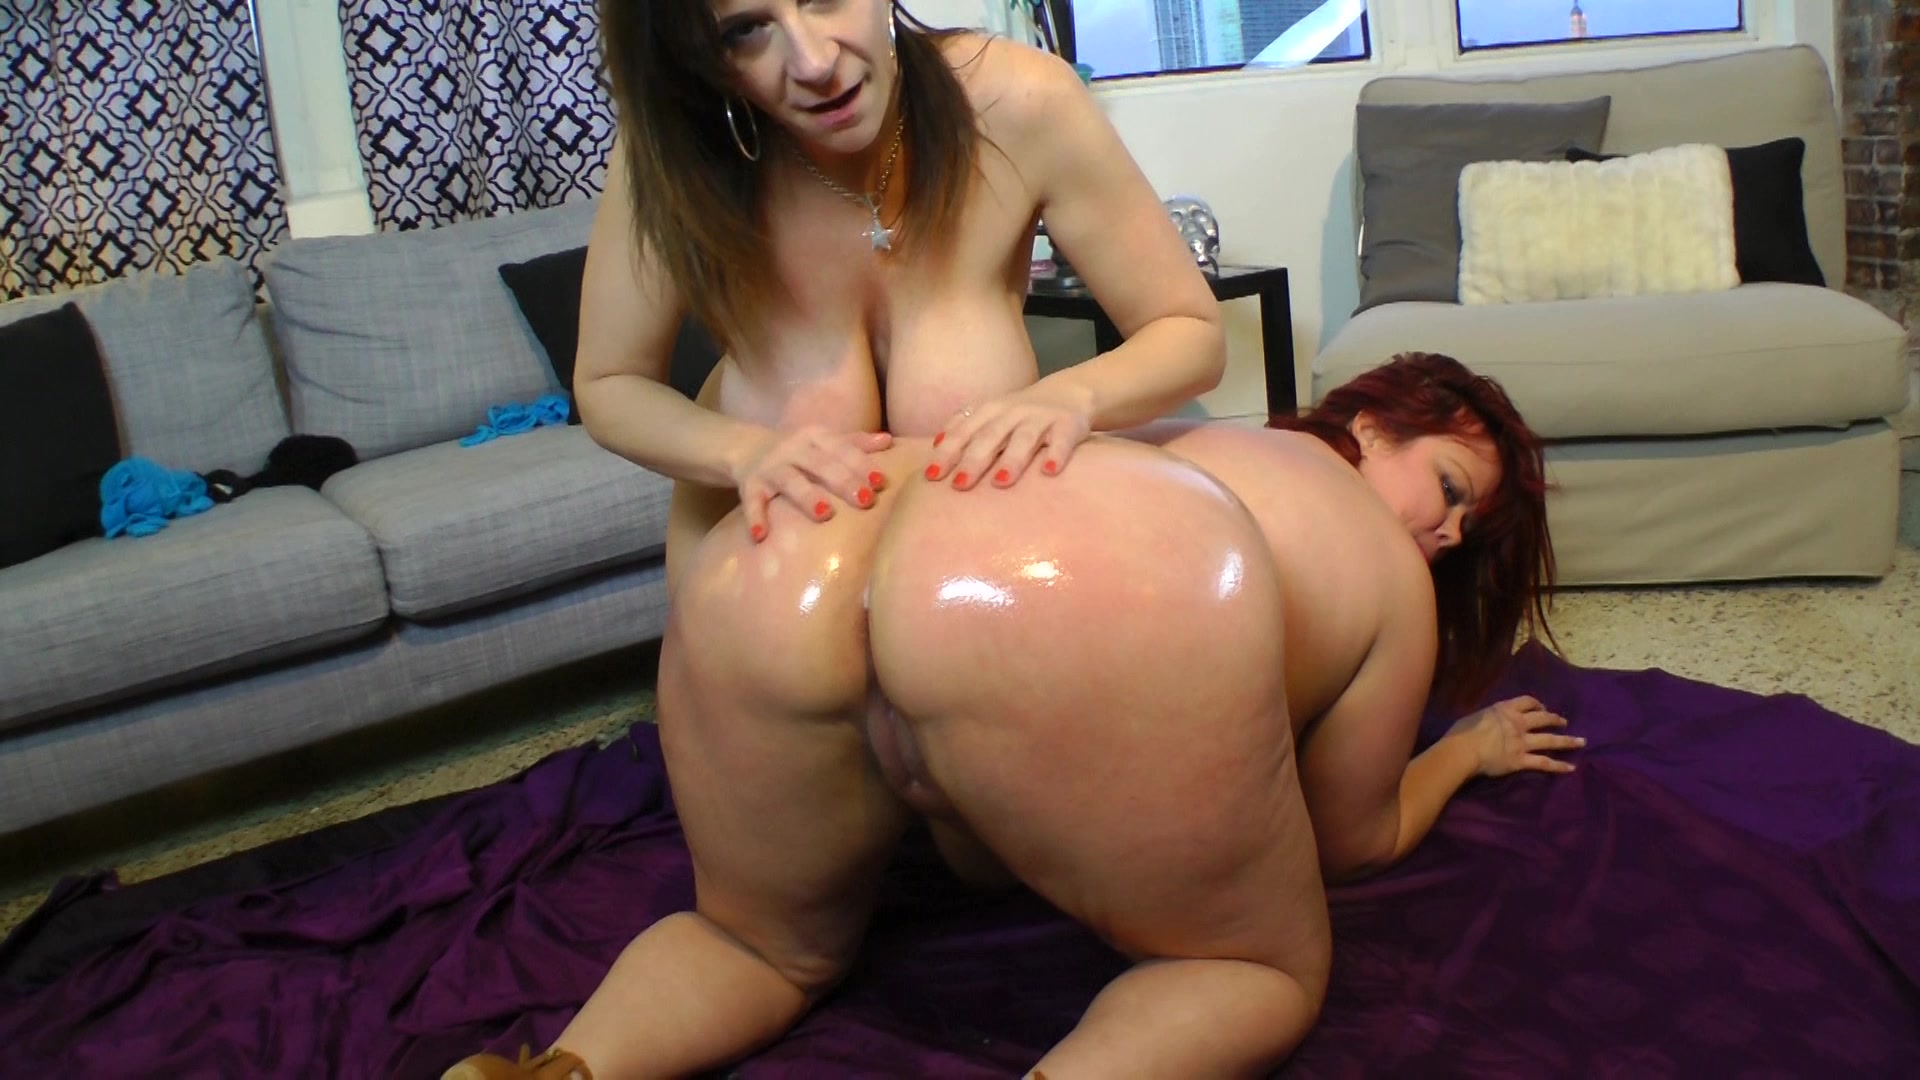 fatties girl in free video action